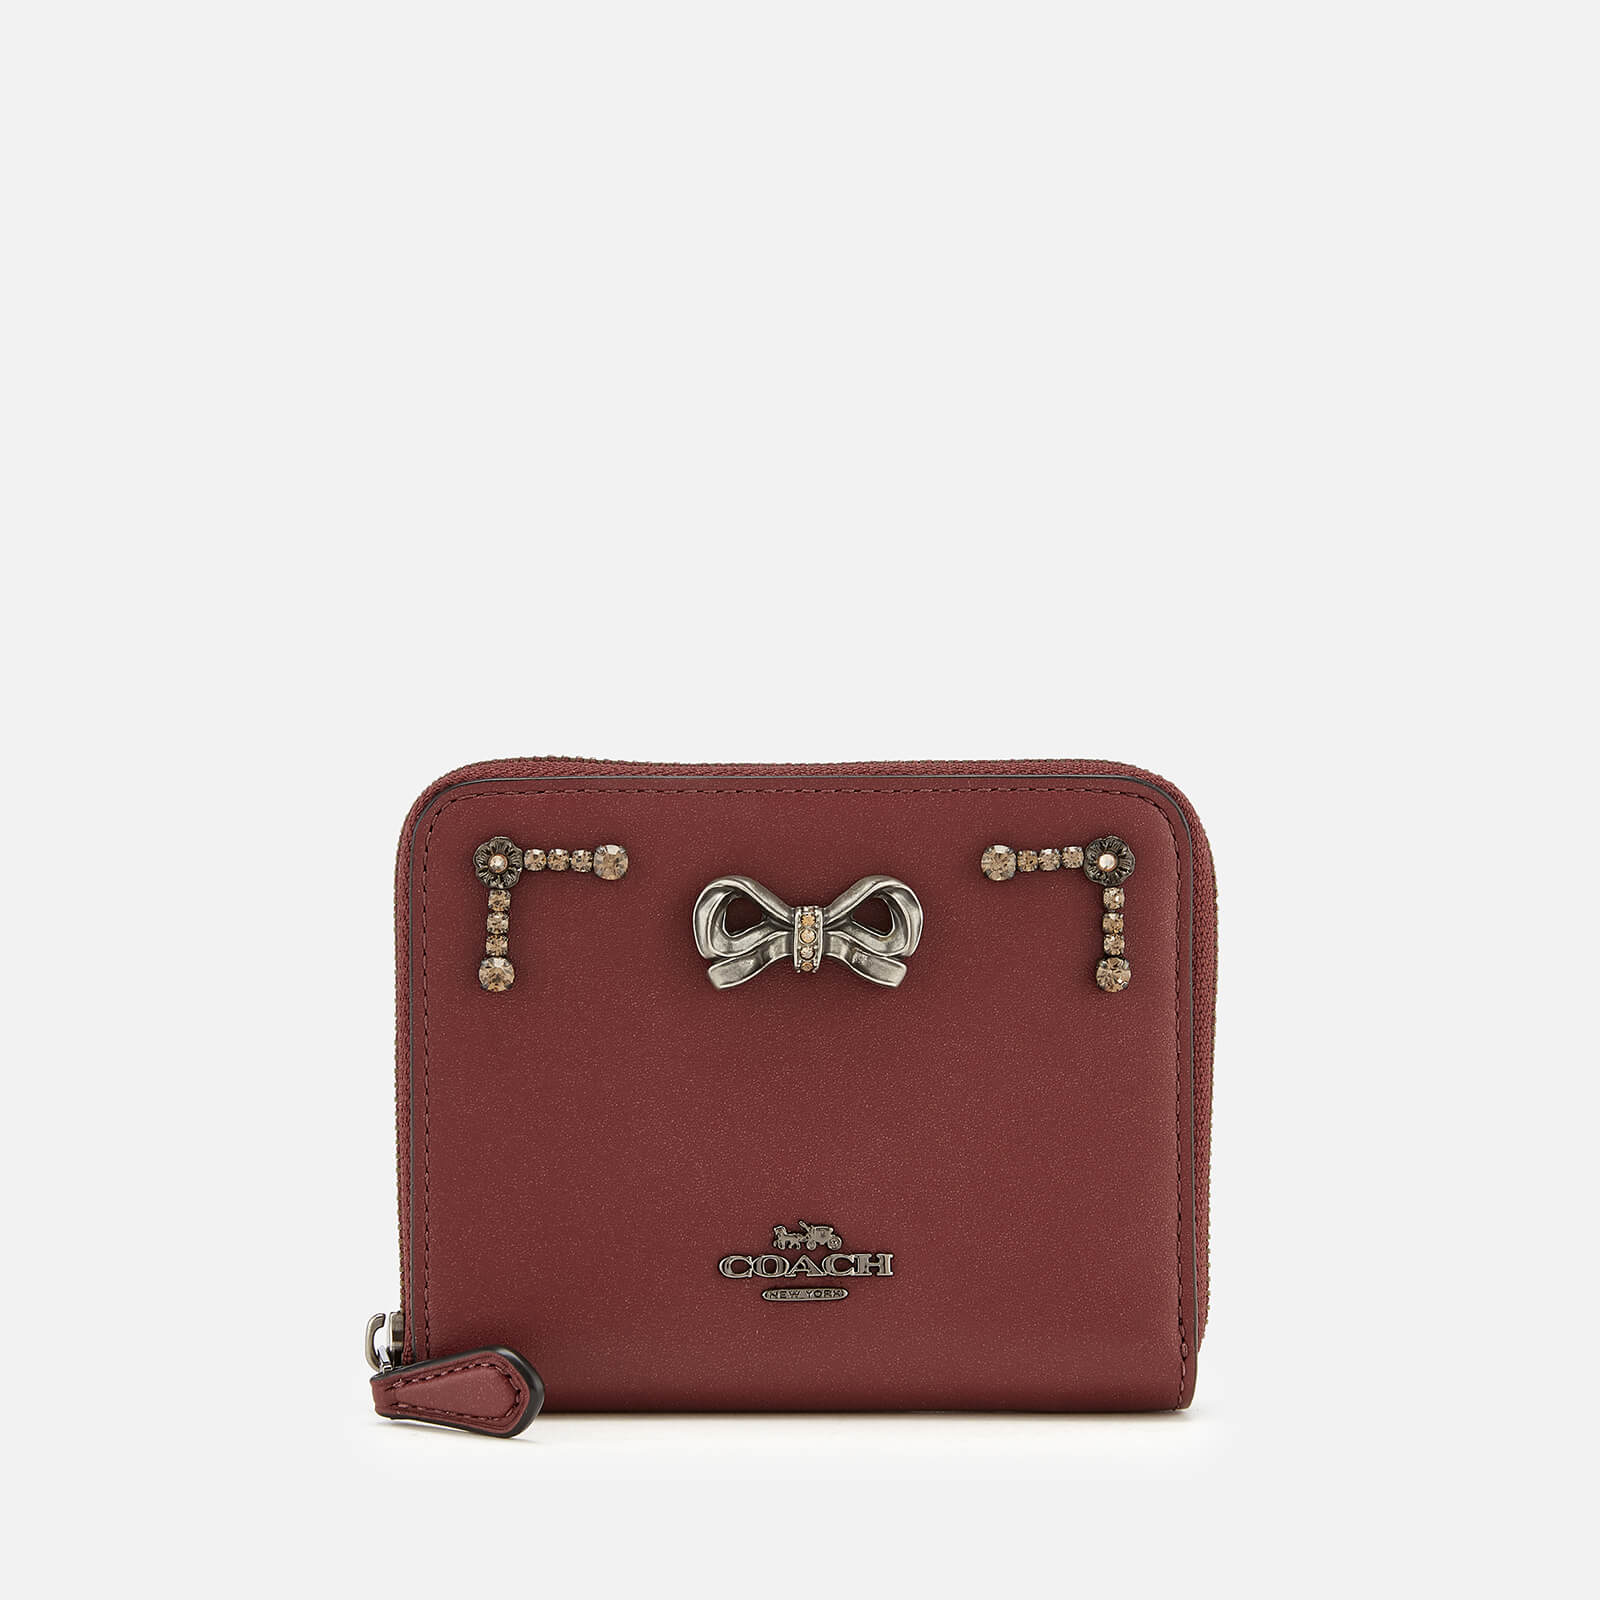 73889321bbba0 Coach Women s Selena Crystal Embellishment Zip Around Purse - Wine - Free  UK Delivery over £50